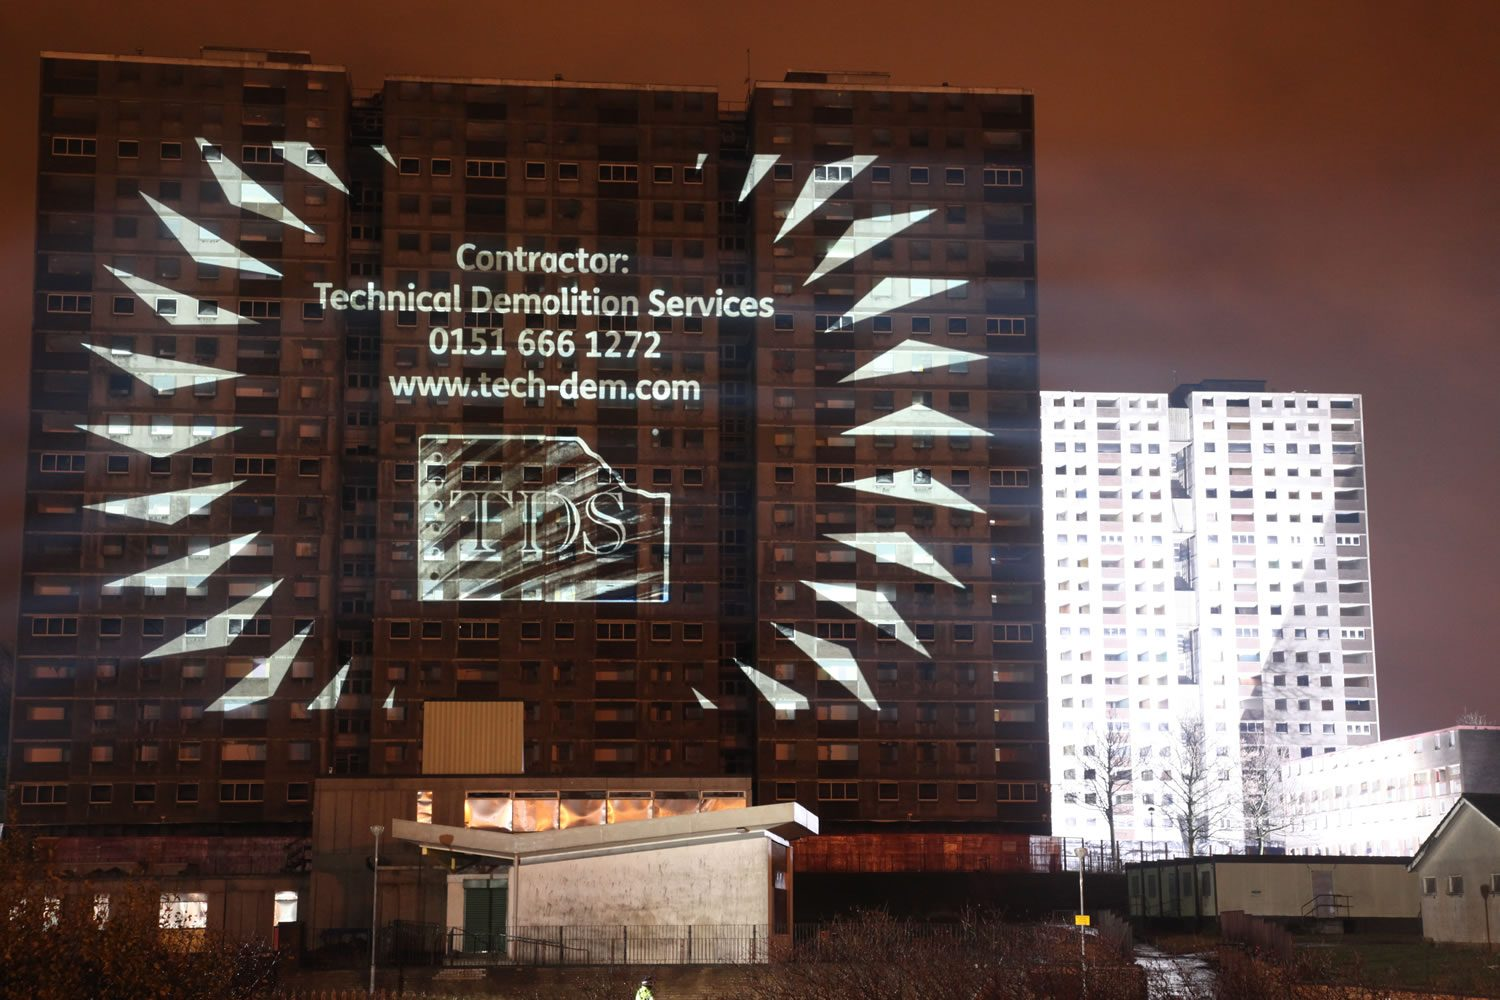 Central-image-_Sighthill_lightshow